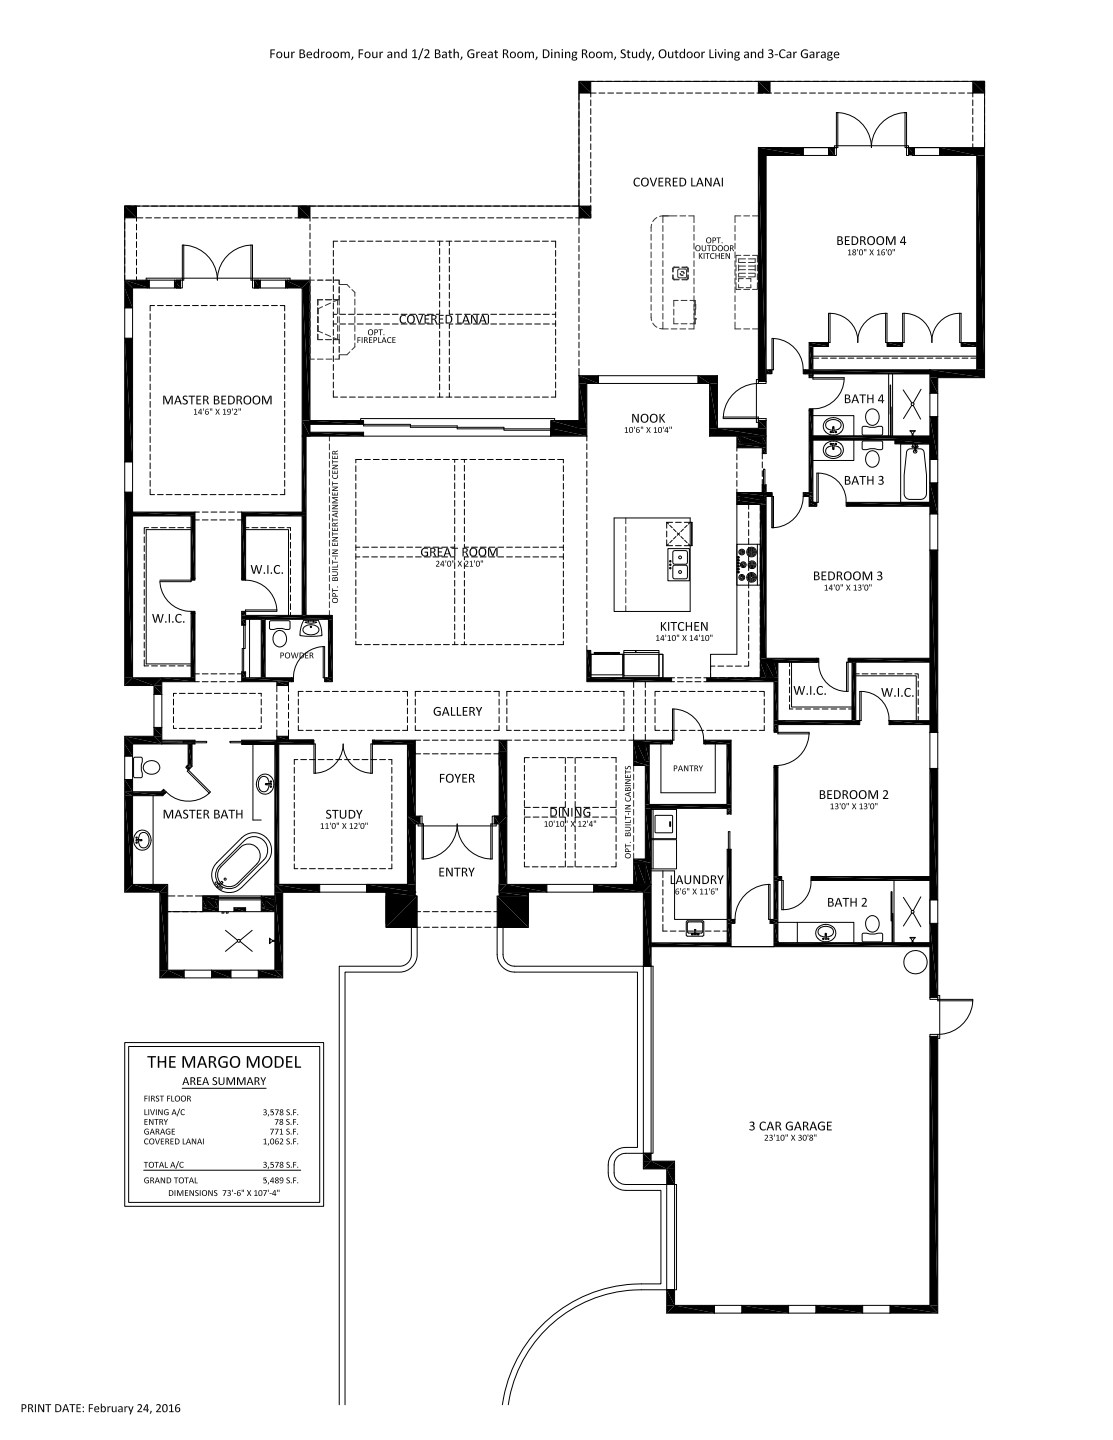 Margo / Floor plans / Country Club East / STOCK Family of